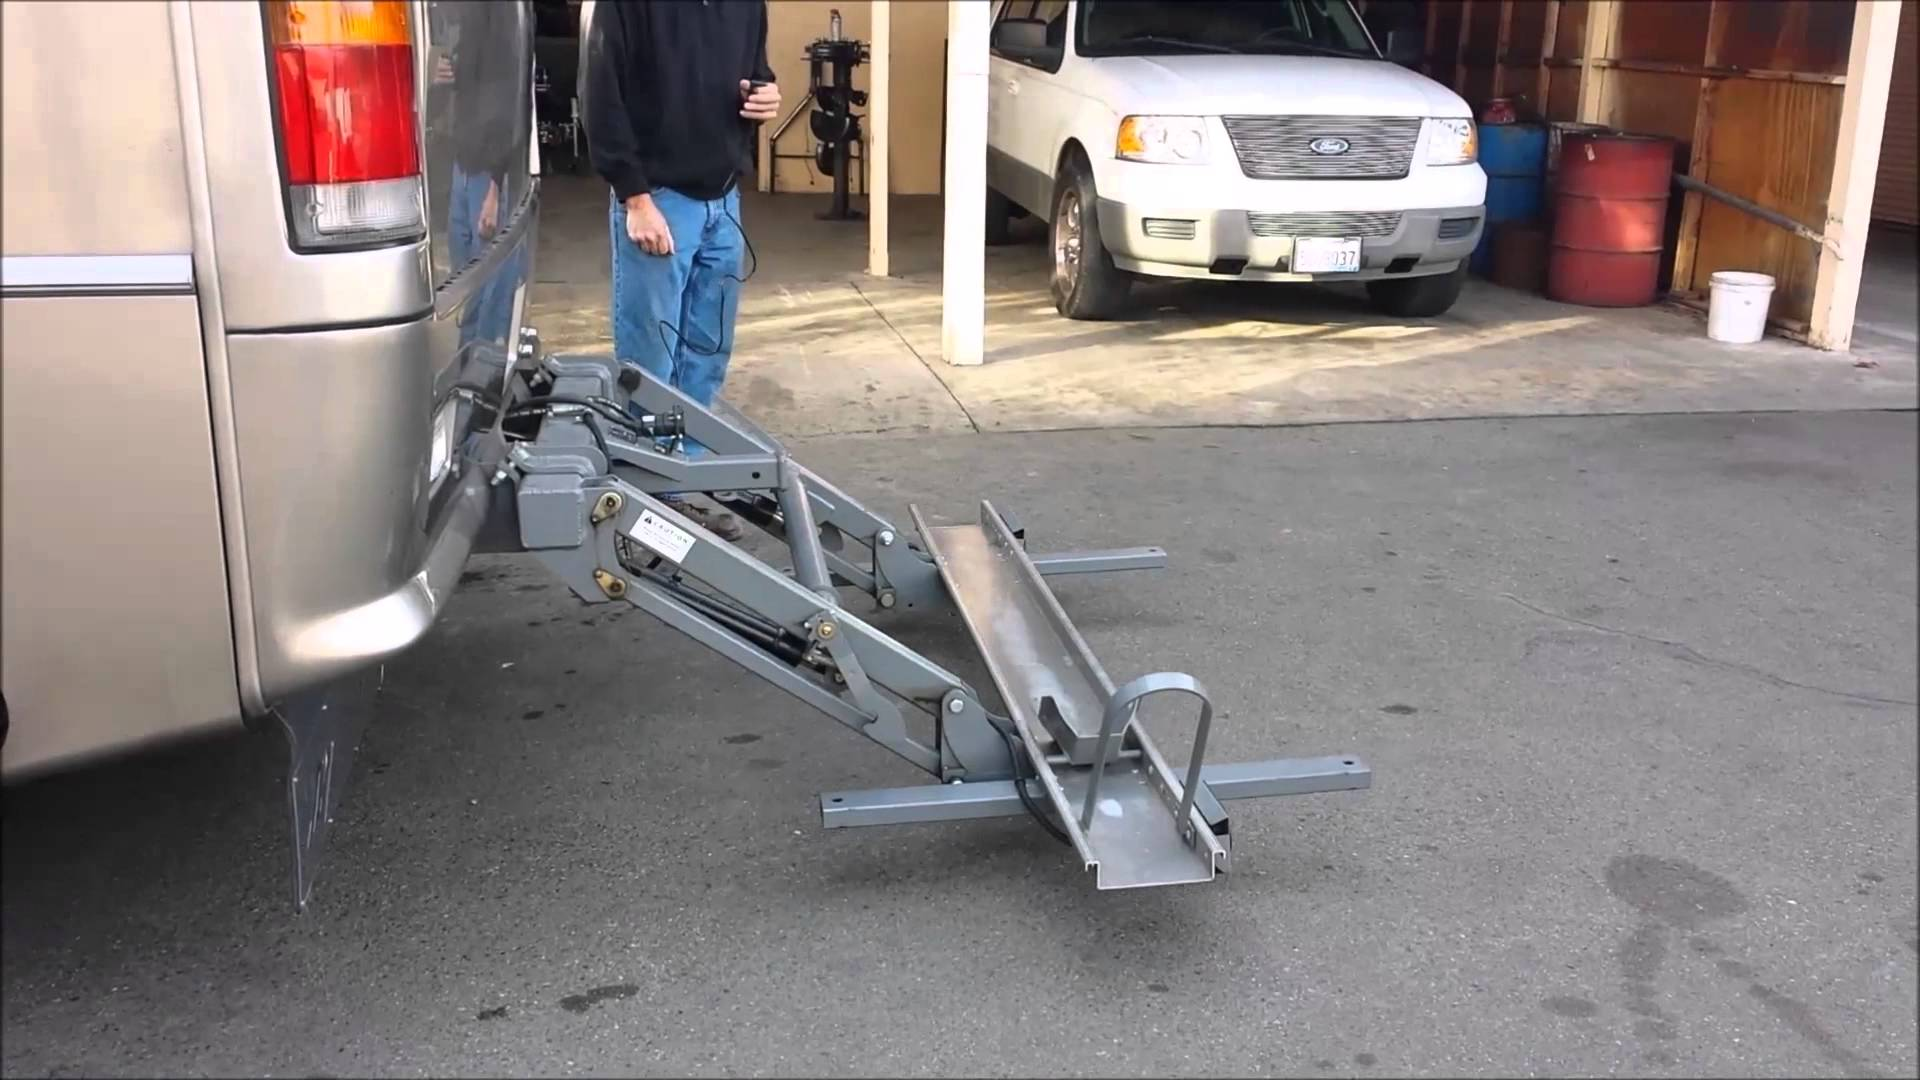 Used Car Lifts for Sale Craigslist Lovely Hydra Lift Hydraulic Motorcycle Lift for Sale Used Youtube